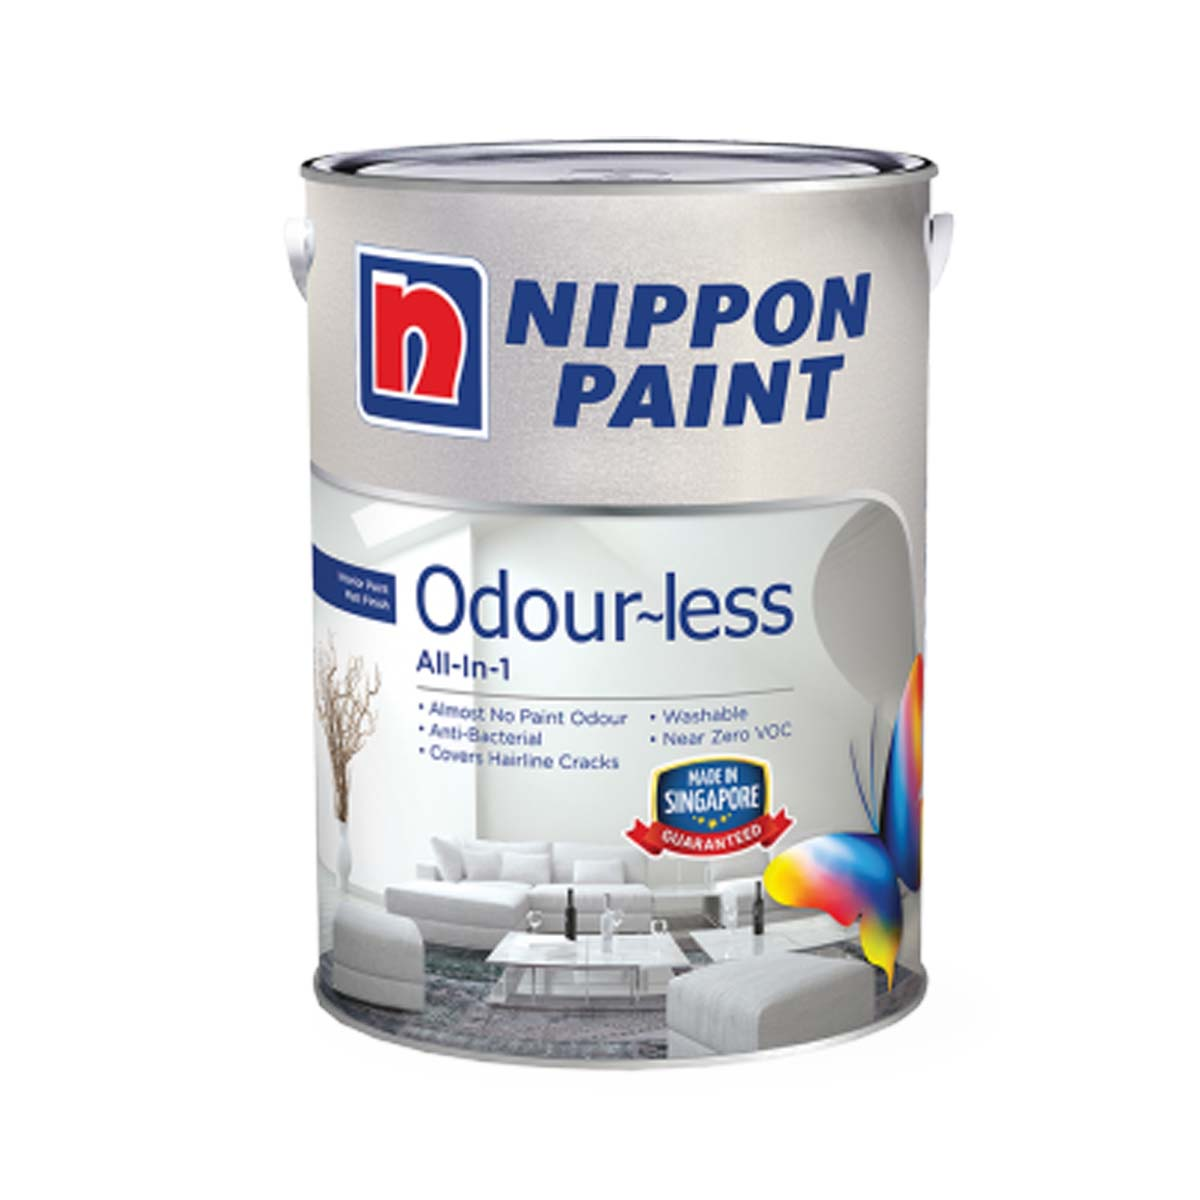 Nippon Odour-Less All-in-1 (All Popular Colours)